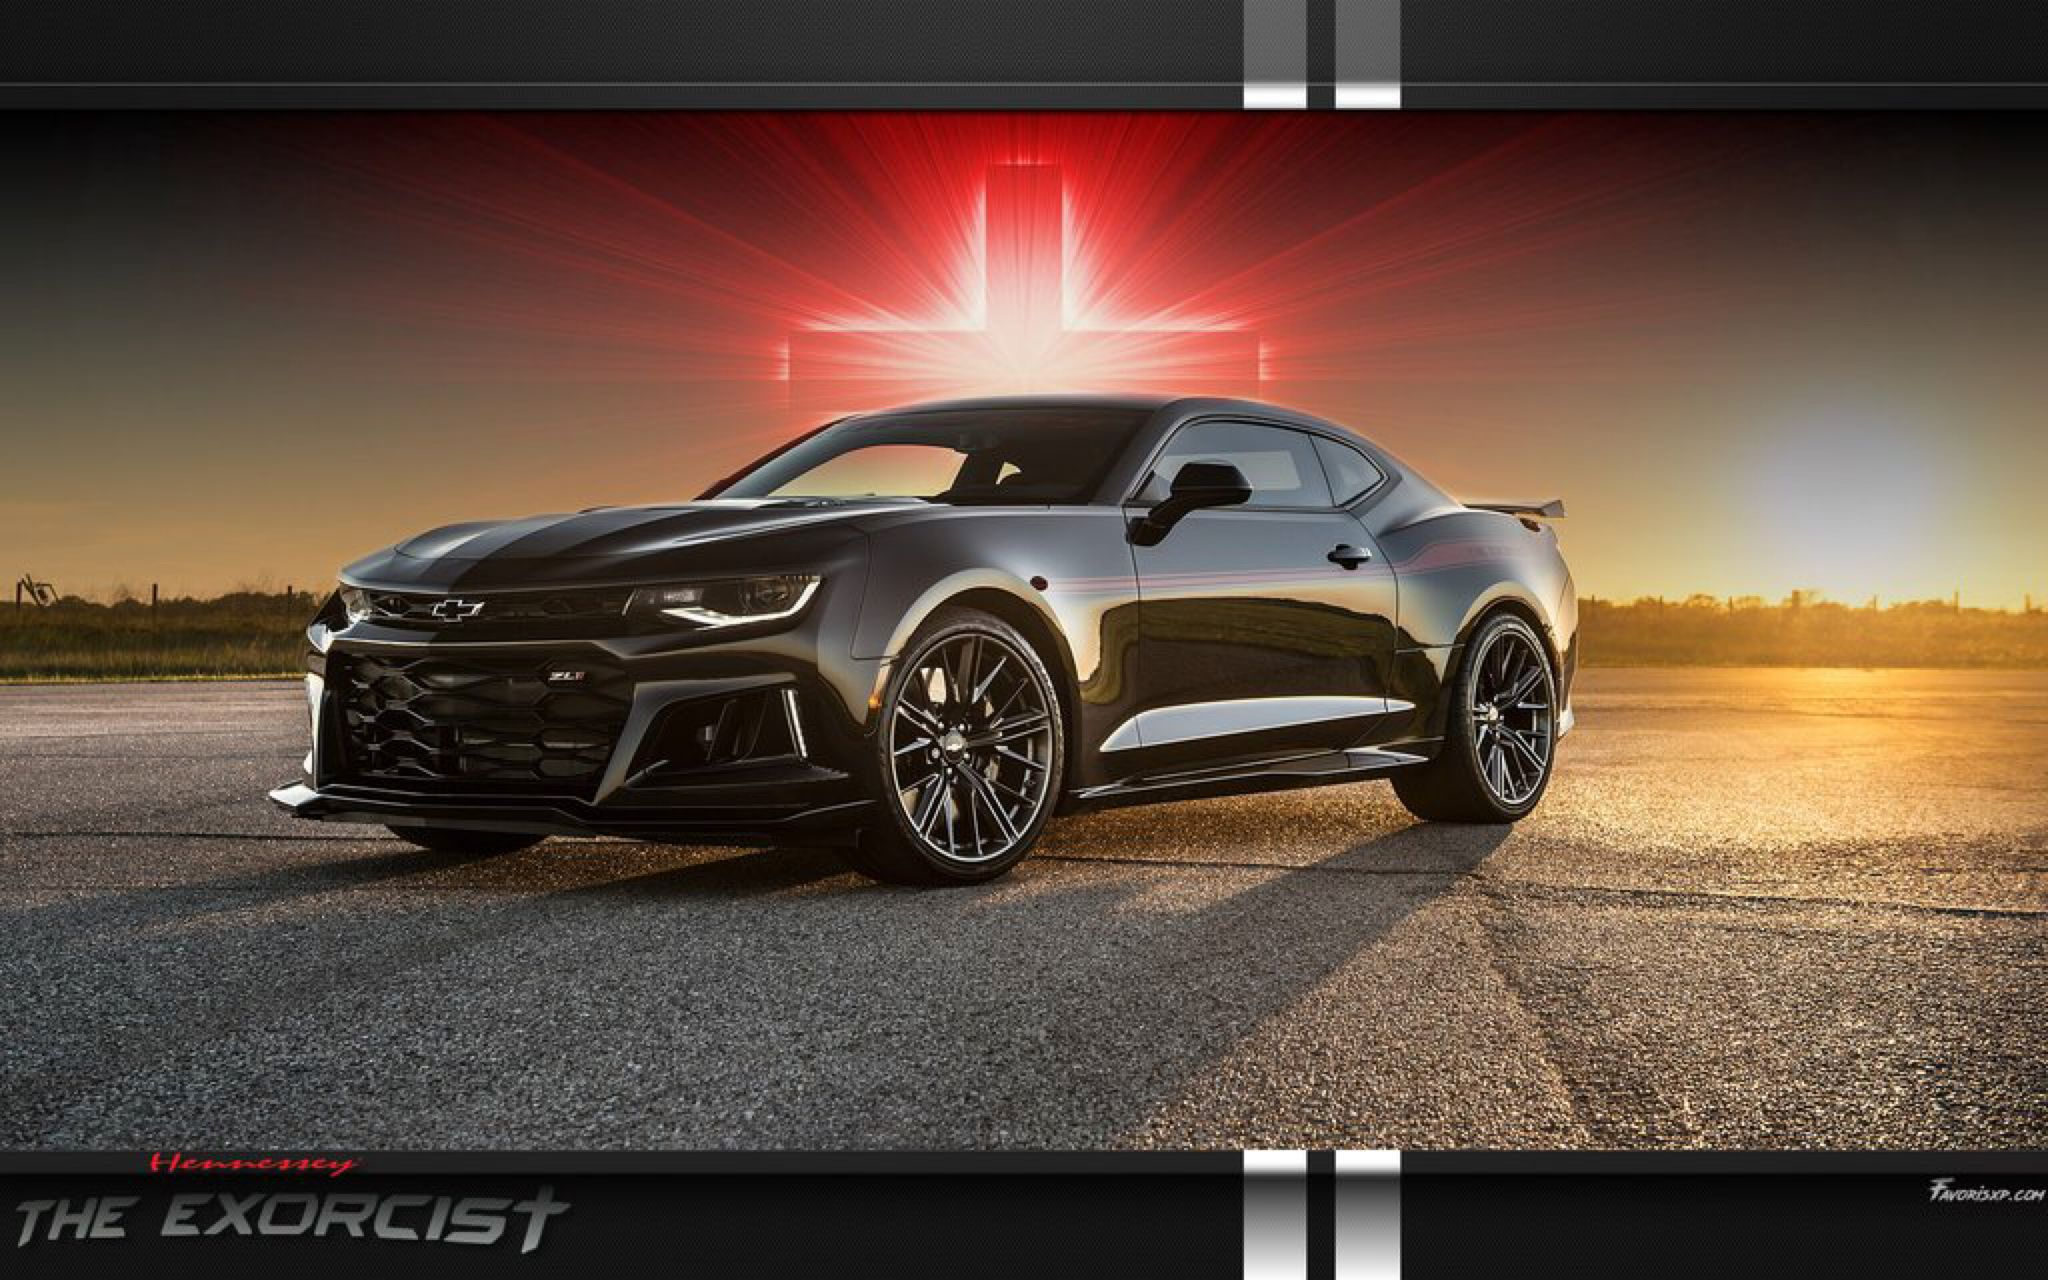 Gto Muscle Car Wallpaper The Exorcist Hennessey Camaro Zl1 Wallpaper By Favorisxp